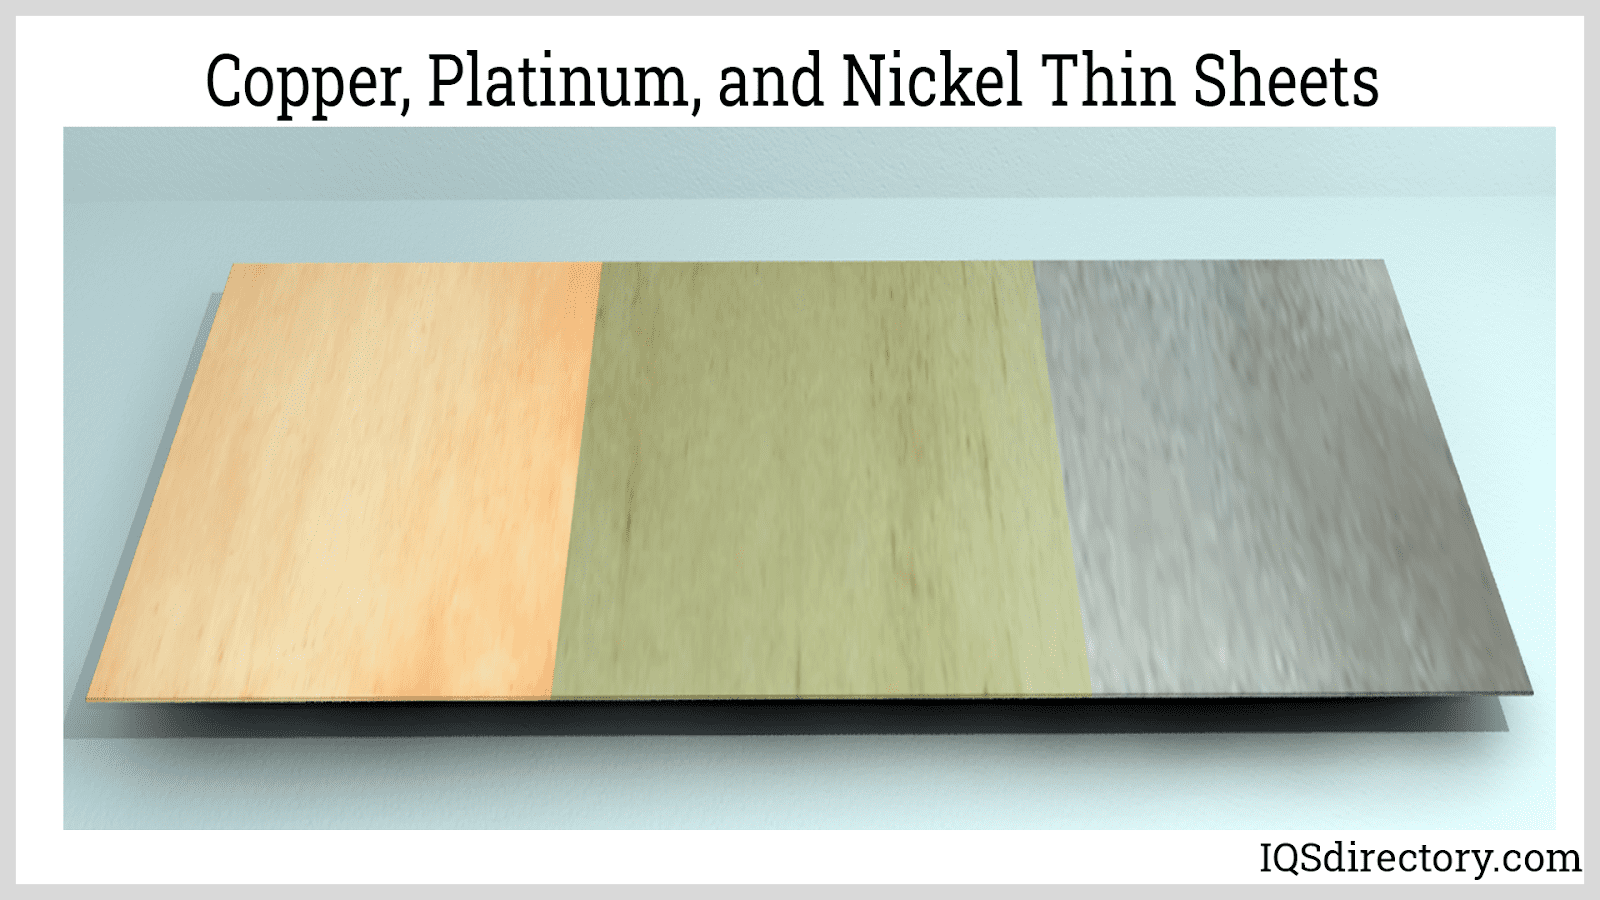 Copper, Platinum, and Nickel Thin Sheets